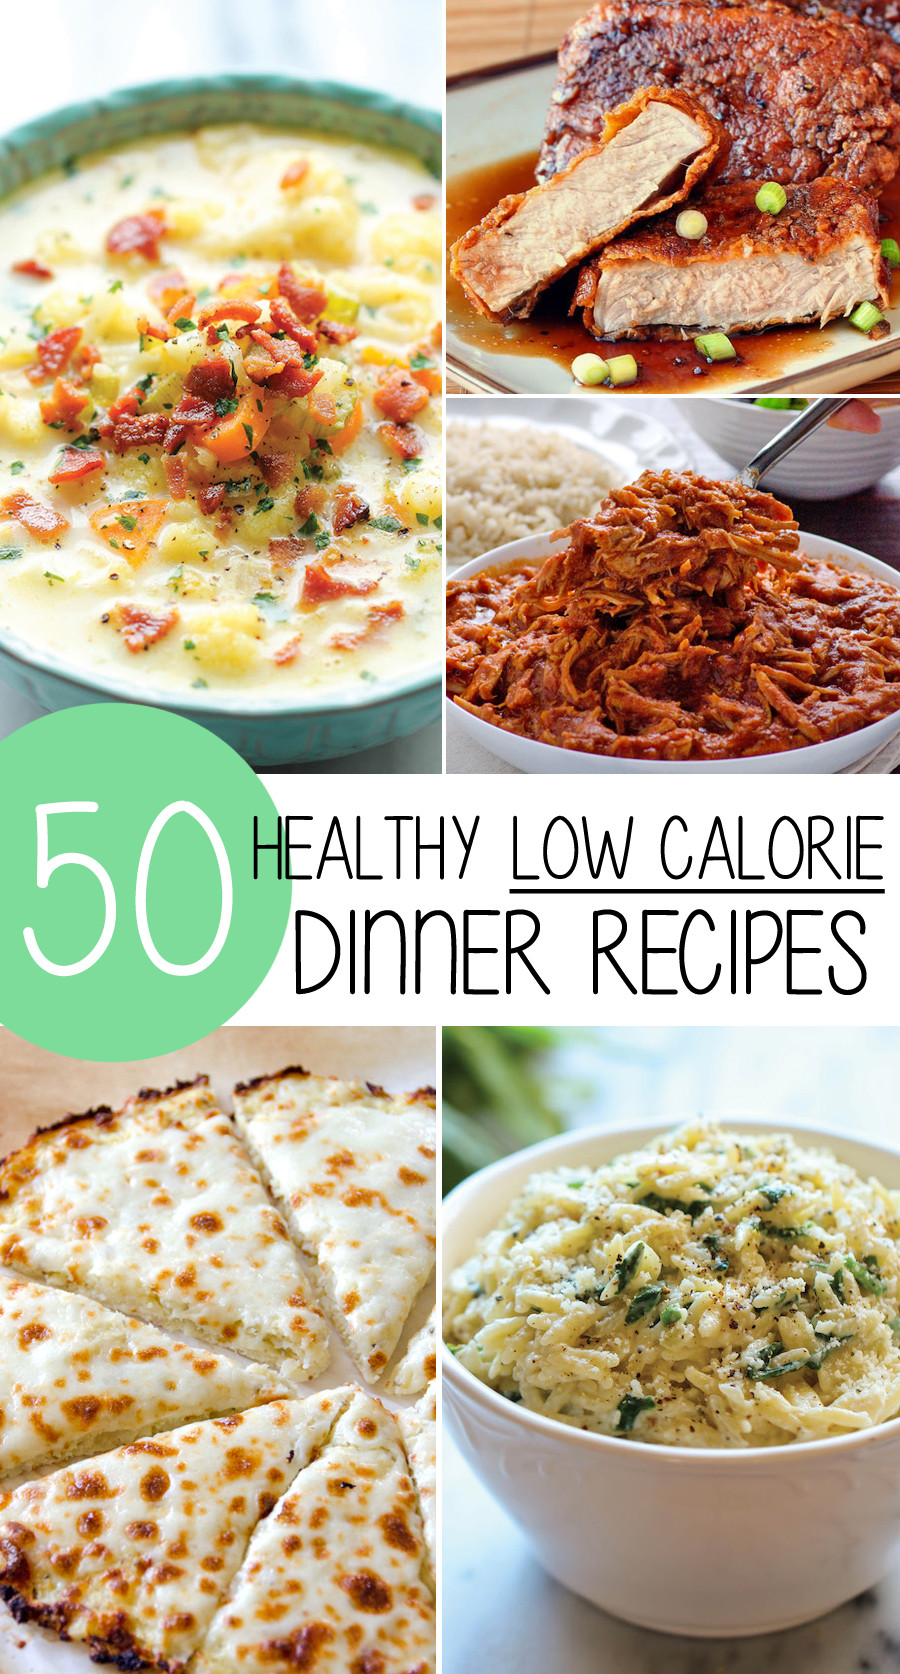 Weight Loss Dinner  50 Healthy Low Calorie Weight Loss Dinner Recipes